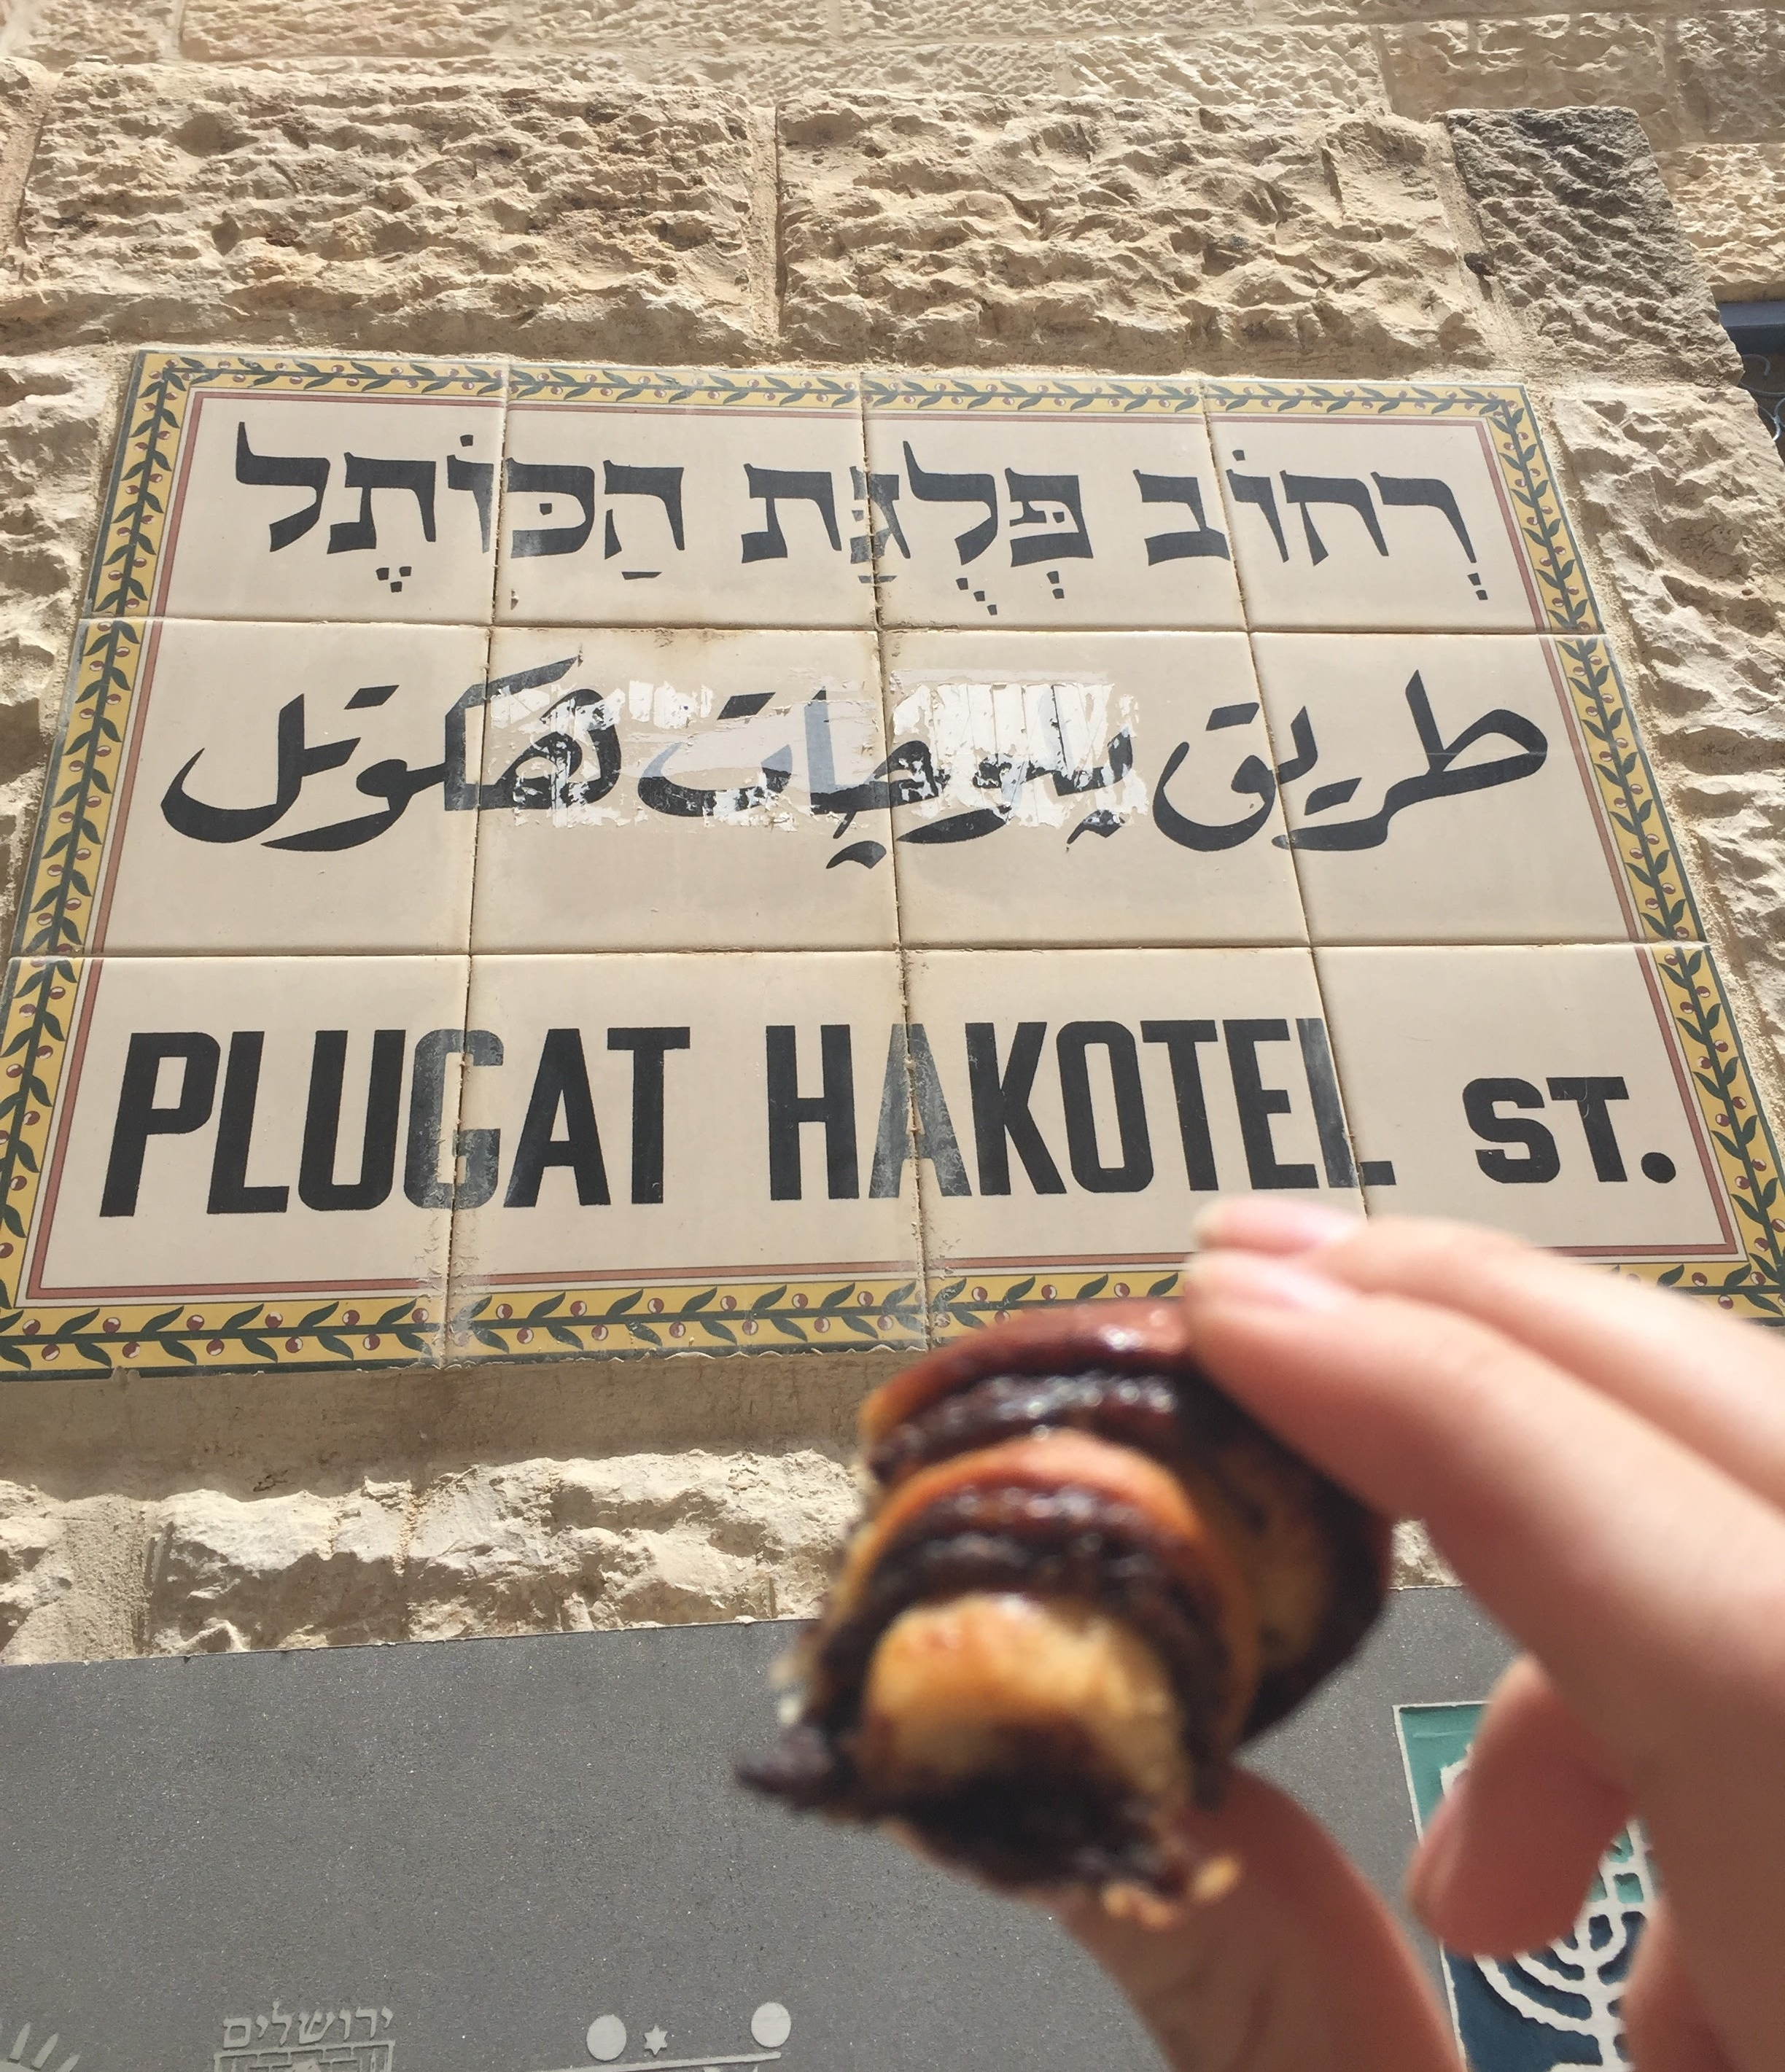 In the Old City in Jerusalem, bracing myself with carbs and chocolate for an emotional visit to the Western Wall.